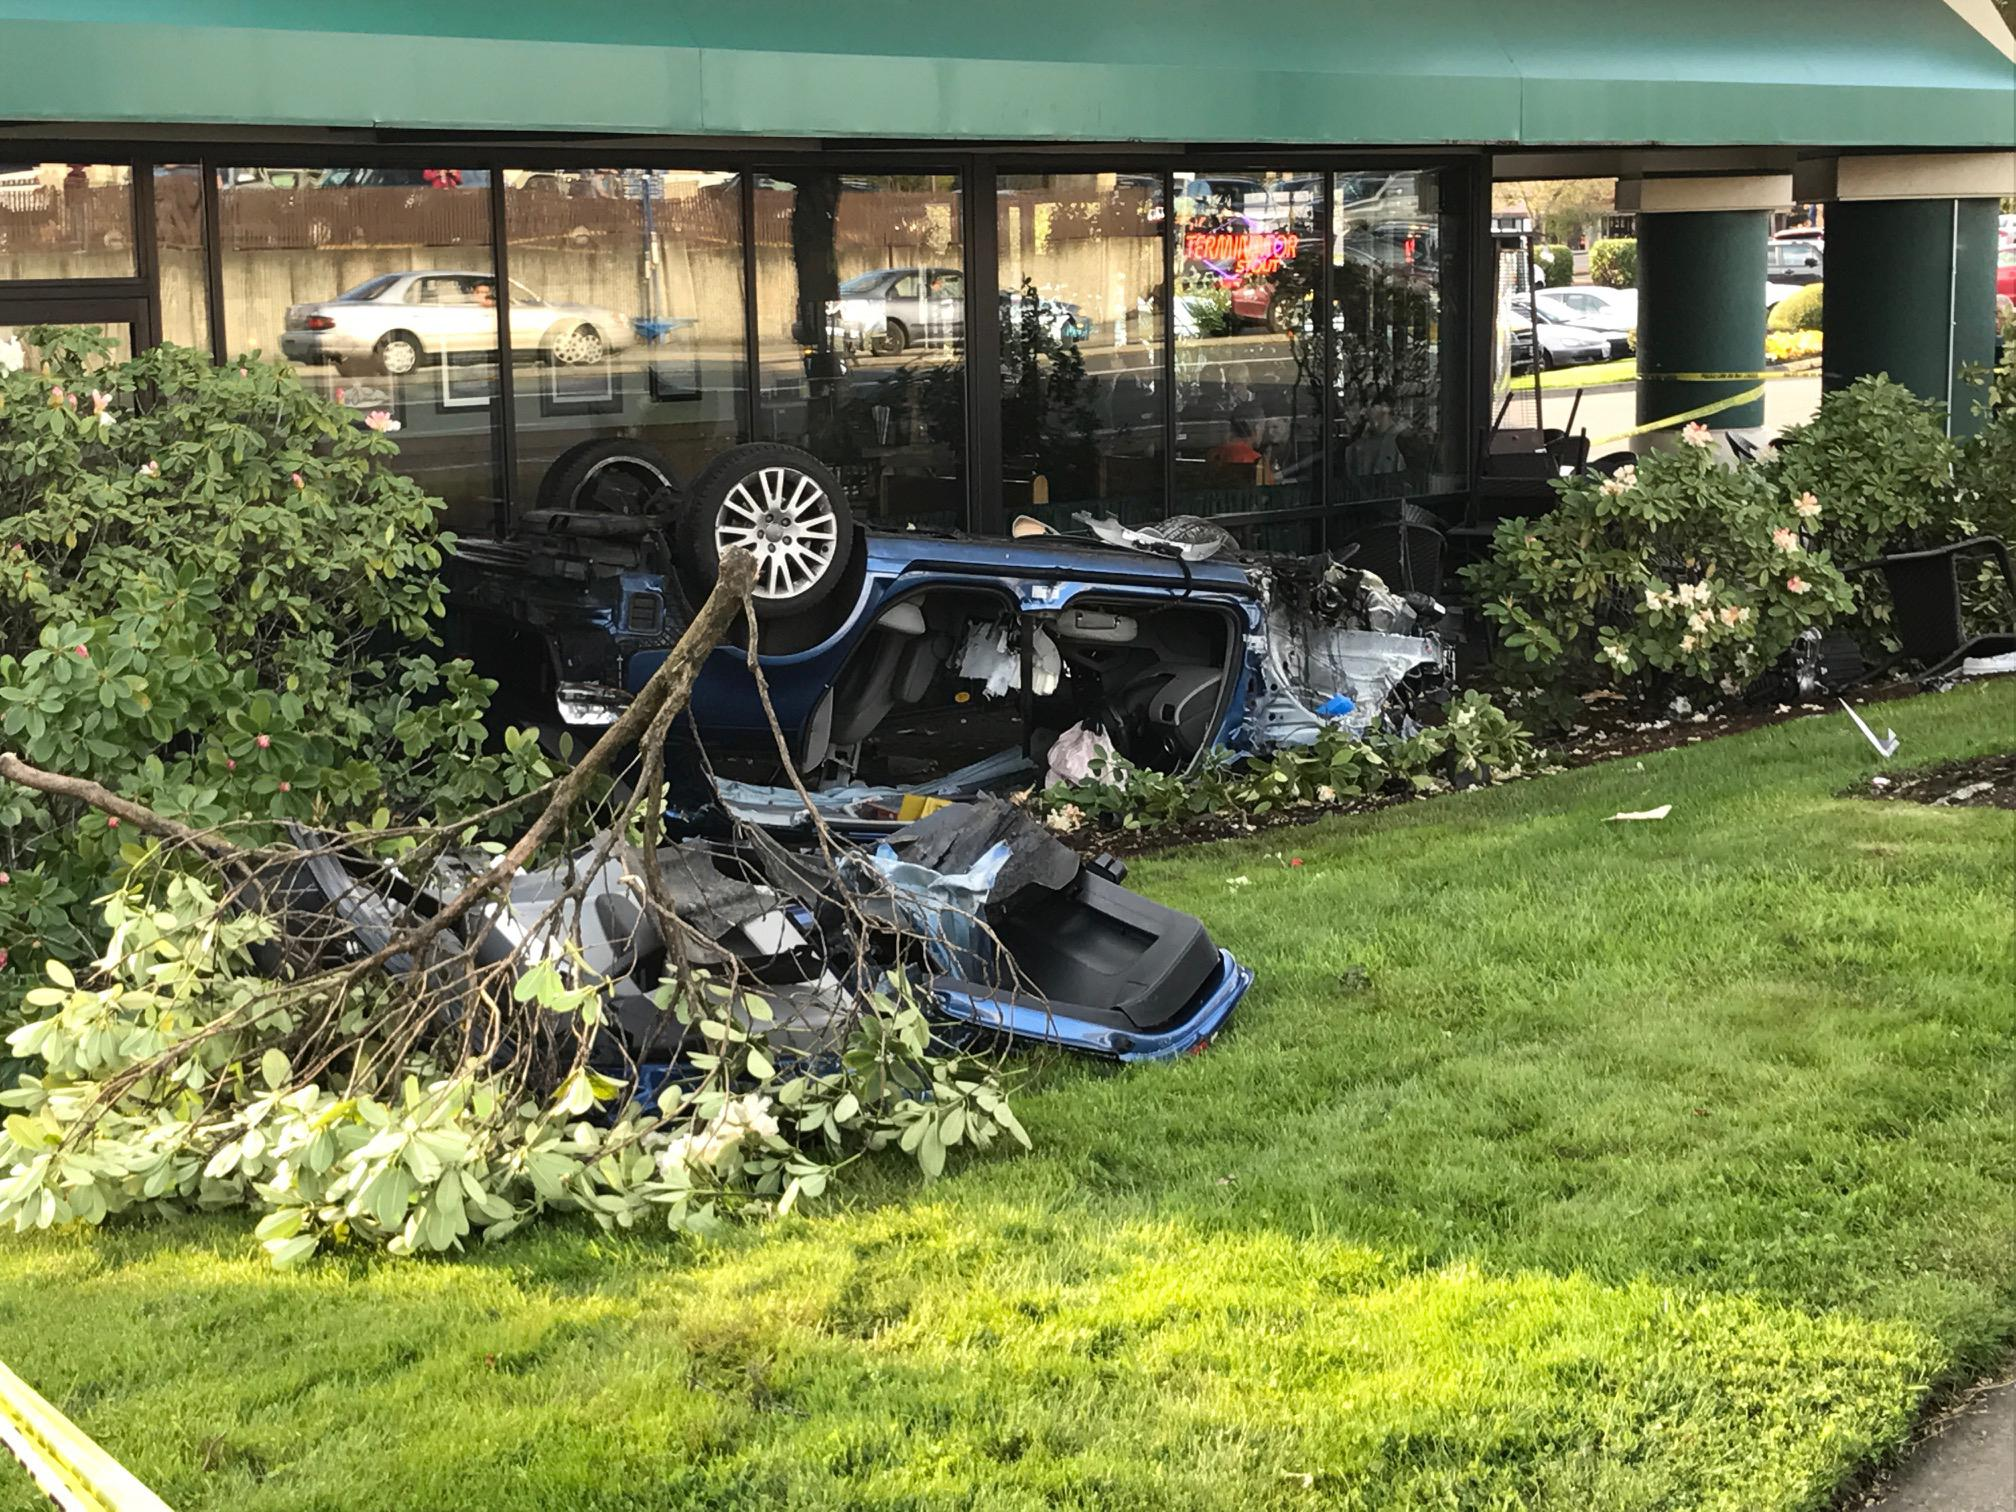 A driver rolled this car Tuesday, April 18, 2017 and hit a bicyclist and a person outside this McMenamins brewpub on Southwest Murray and Allen in Beaverton. The driver was also injured. (Photo: Lincoln Graves)